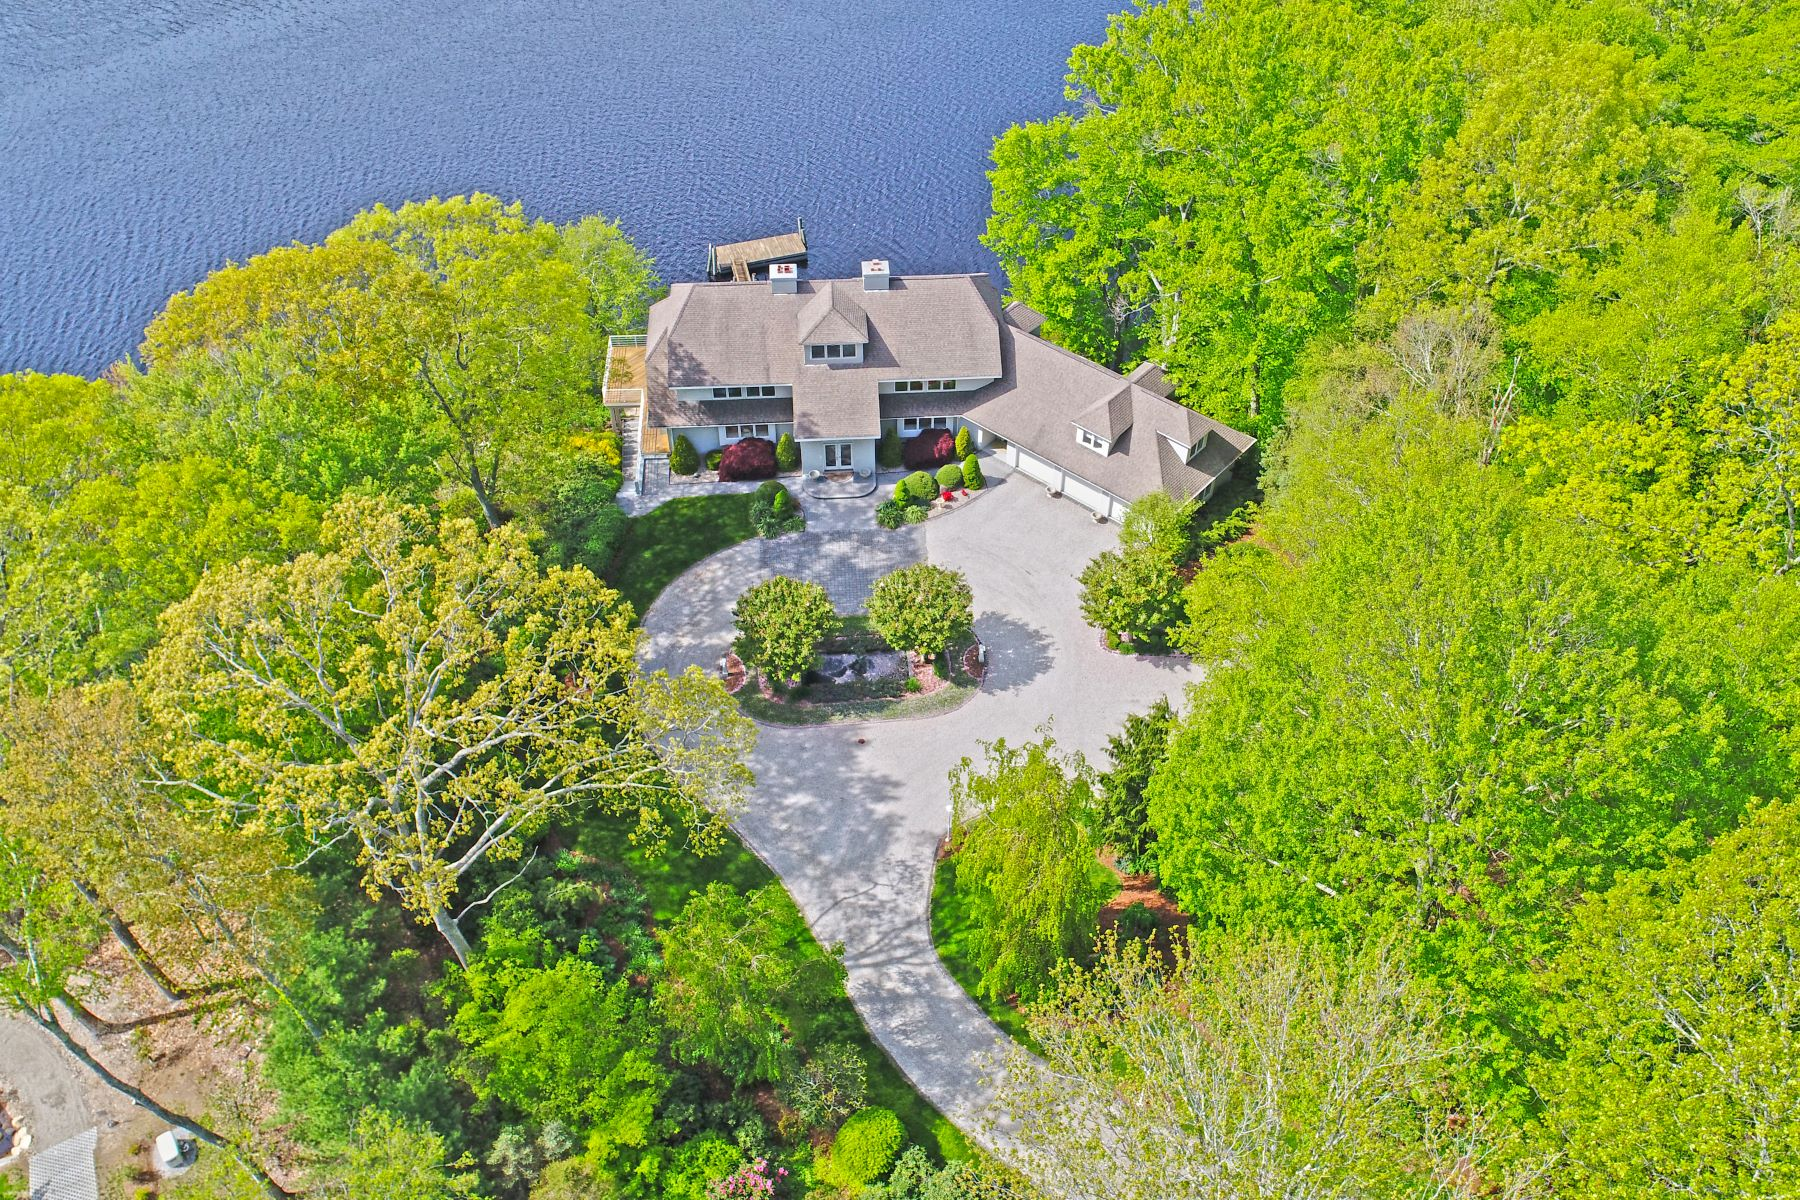 Single Family Home for Sale at Exceptional Property With Deep Water Dock 59 Cove Rd Lyme, Connecticut, 06371 United States